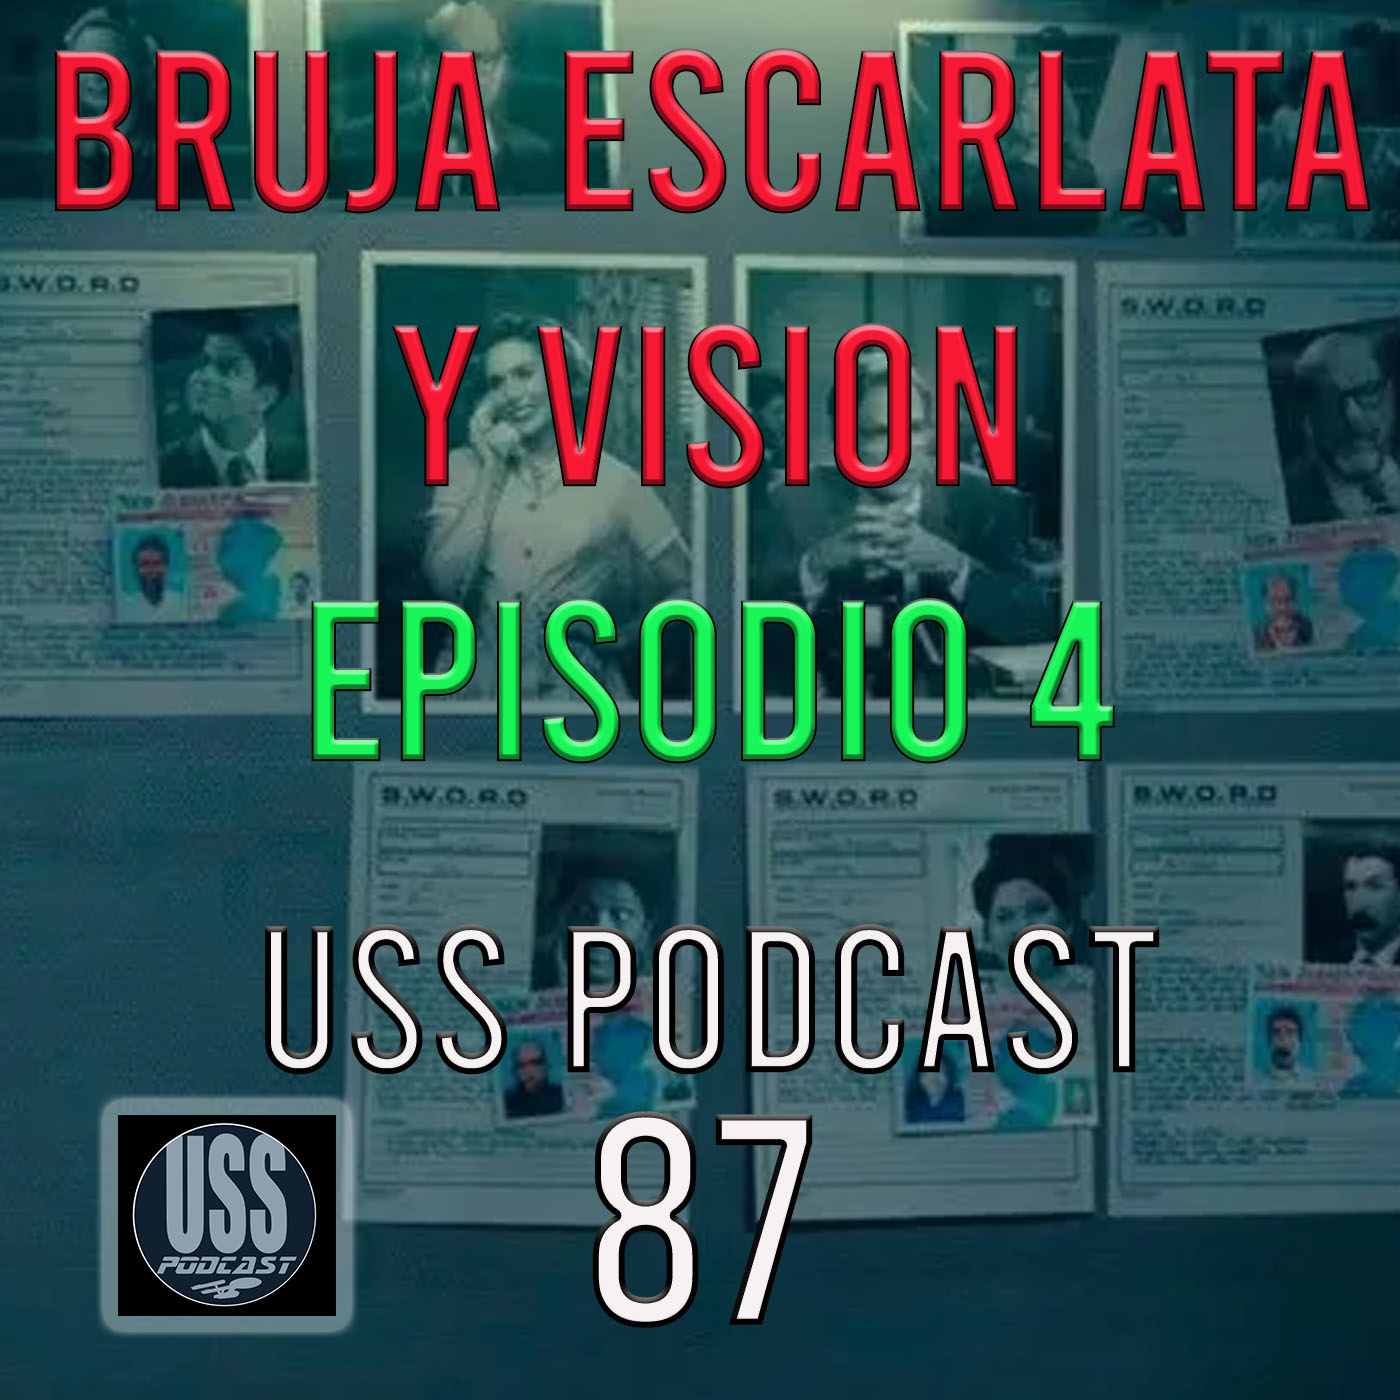 Bruja Escarlata y Vision Episodio 4 USS Podcast 87